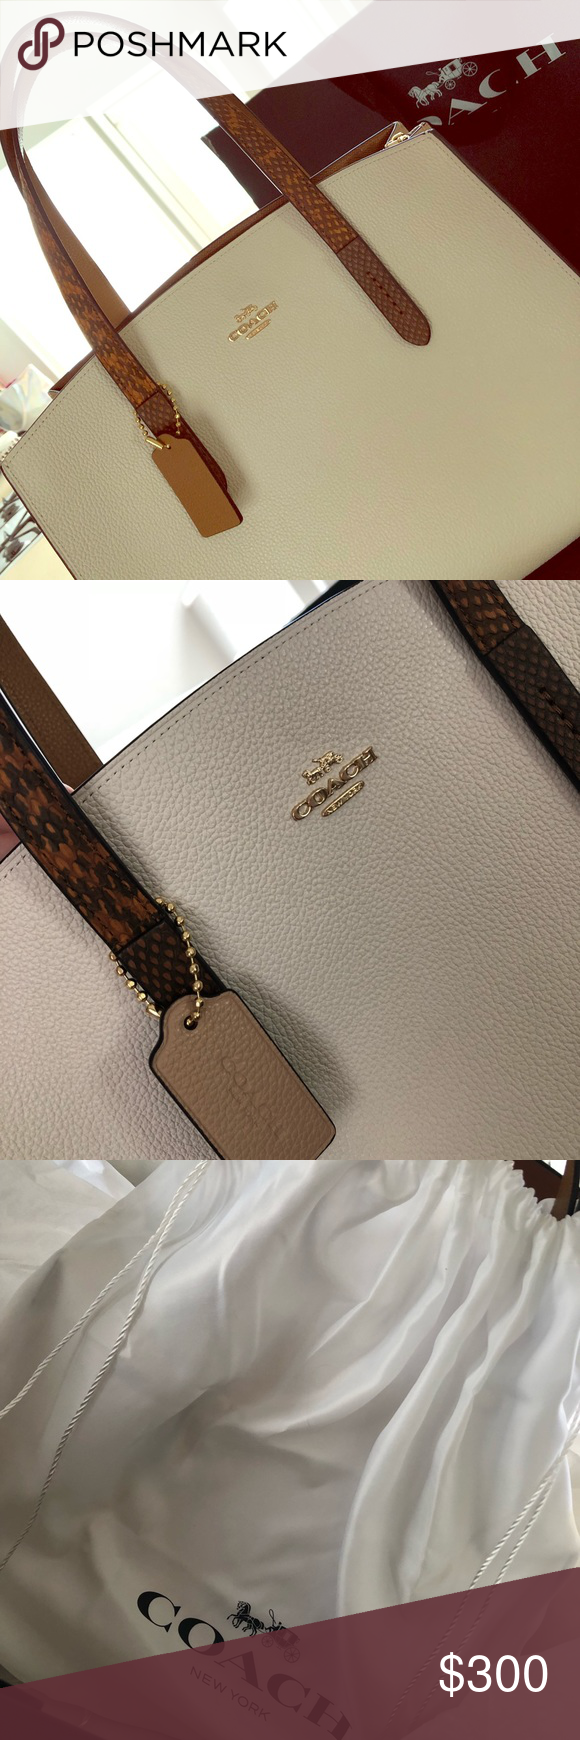 3d37a927b8 **BRAND NEW** Coach Charlie Carryall !! Charlie Carryall with Colorblock  Snakeskin